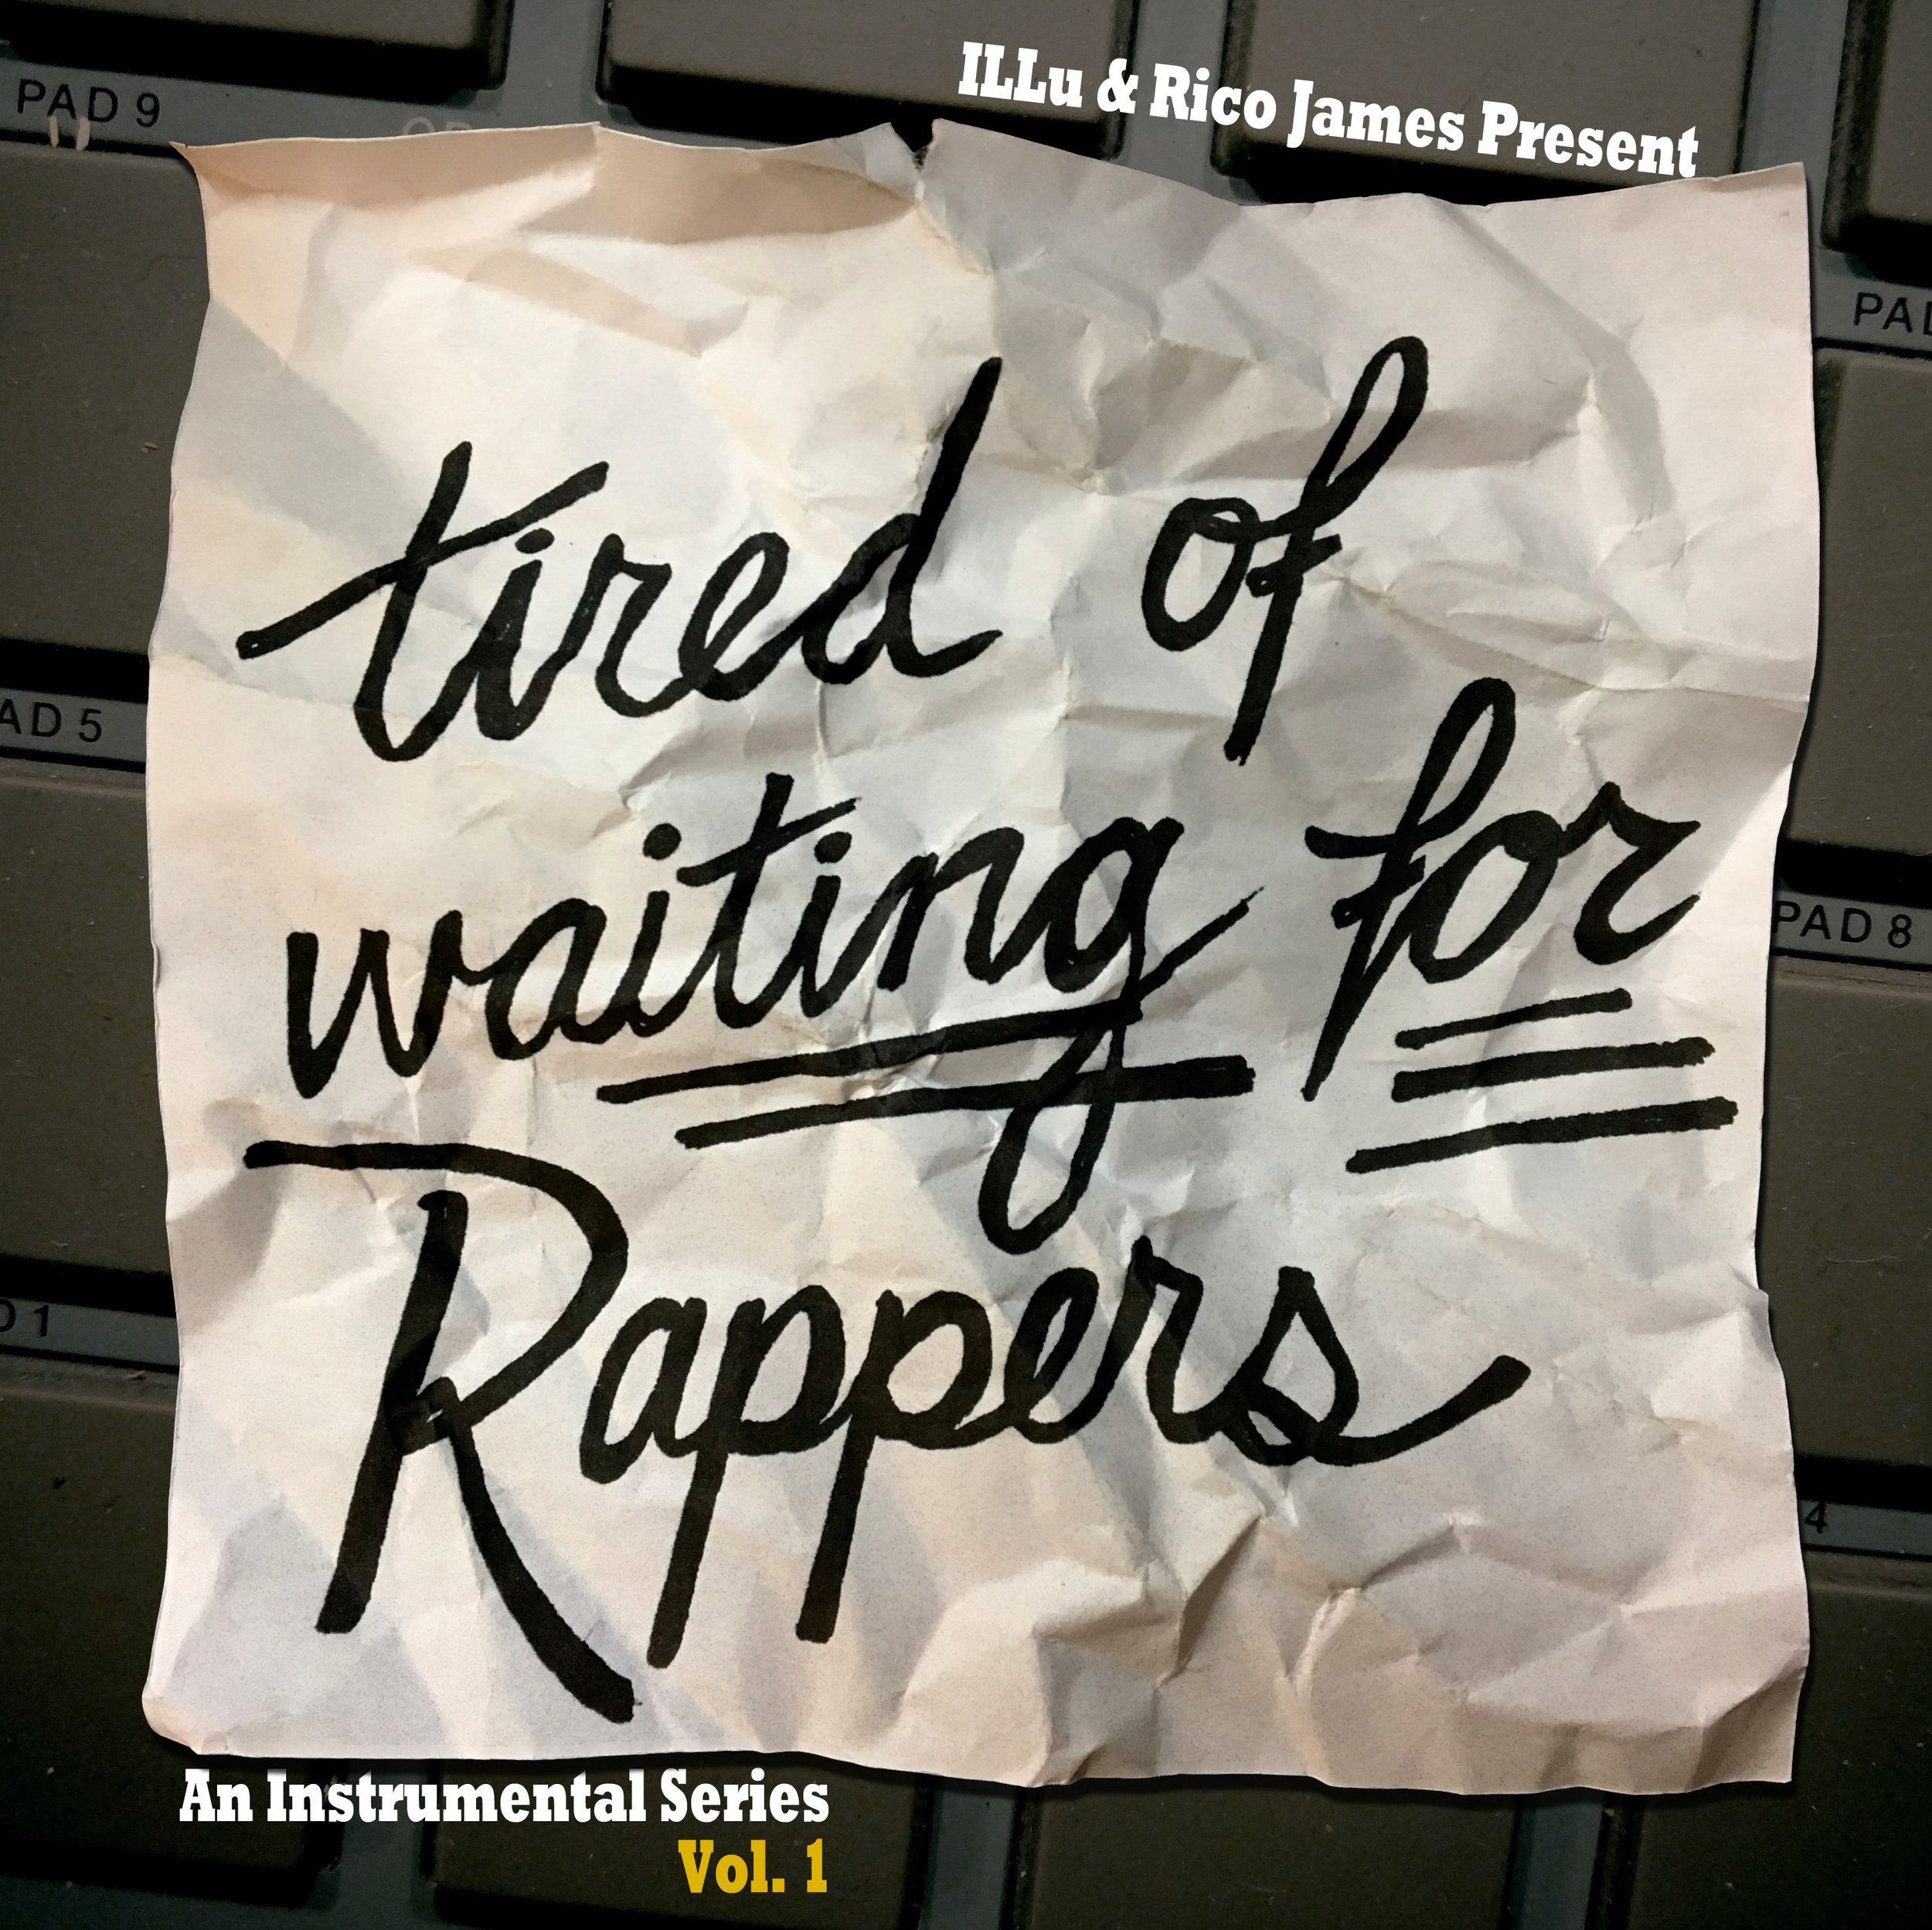 Tired Of Waiting For Rappers Vol. 1.jpg